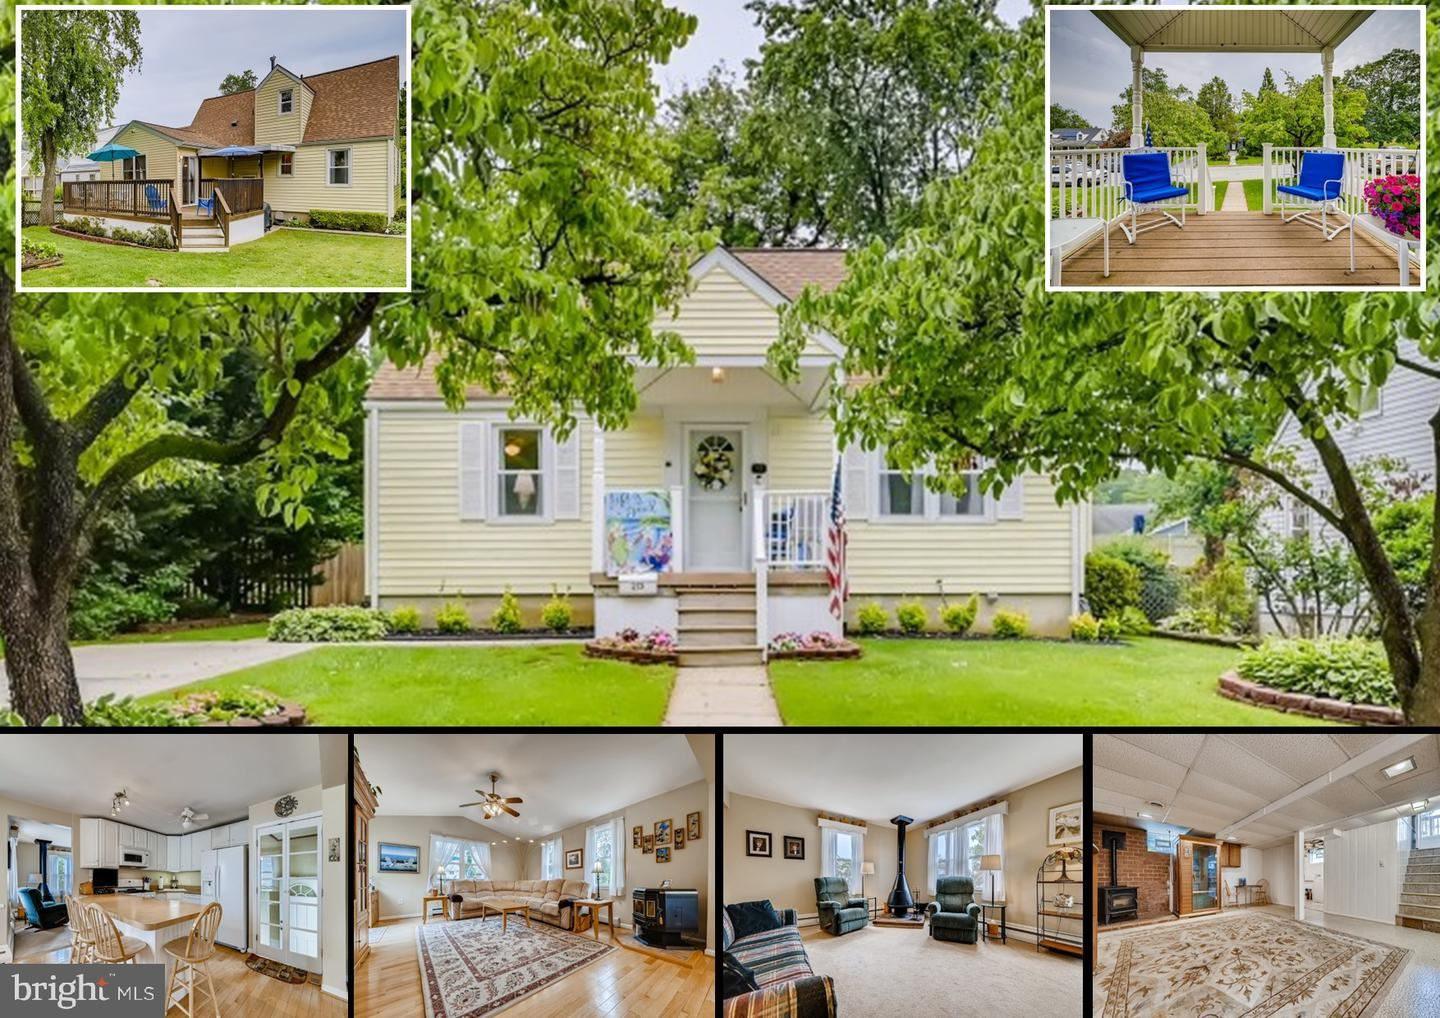 213 DIVISION AVE, Lutherville Timonium, MD 21093 - MLS#: MDBC2003284